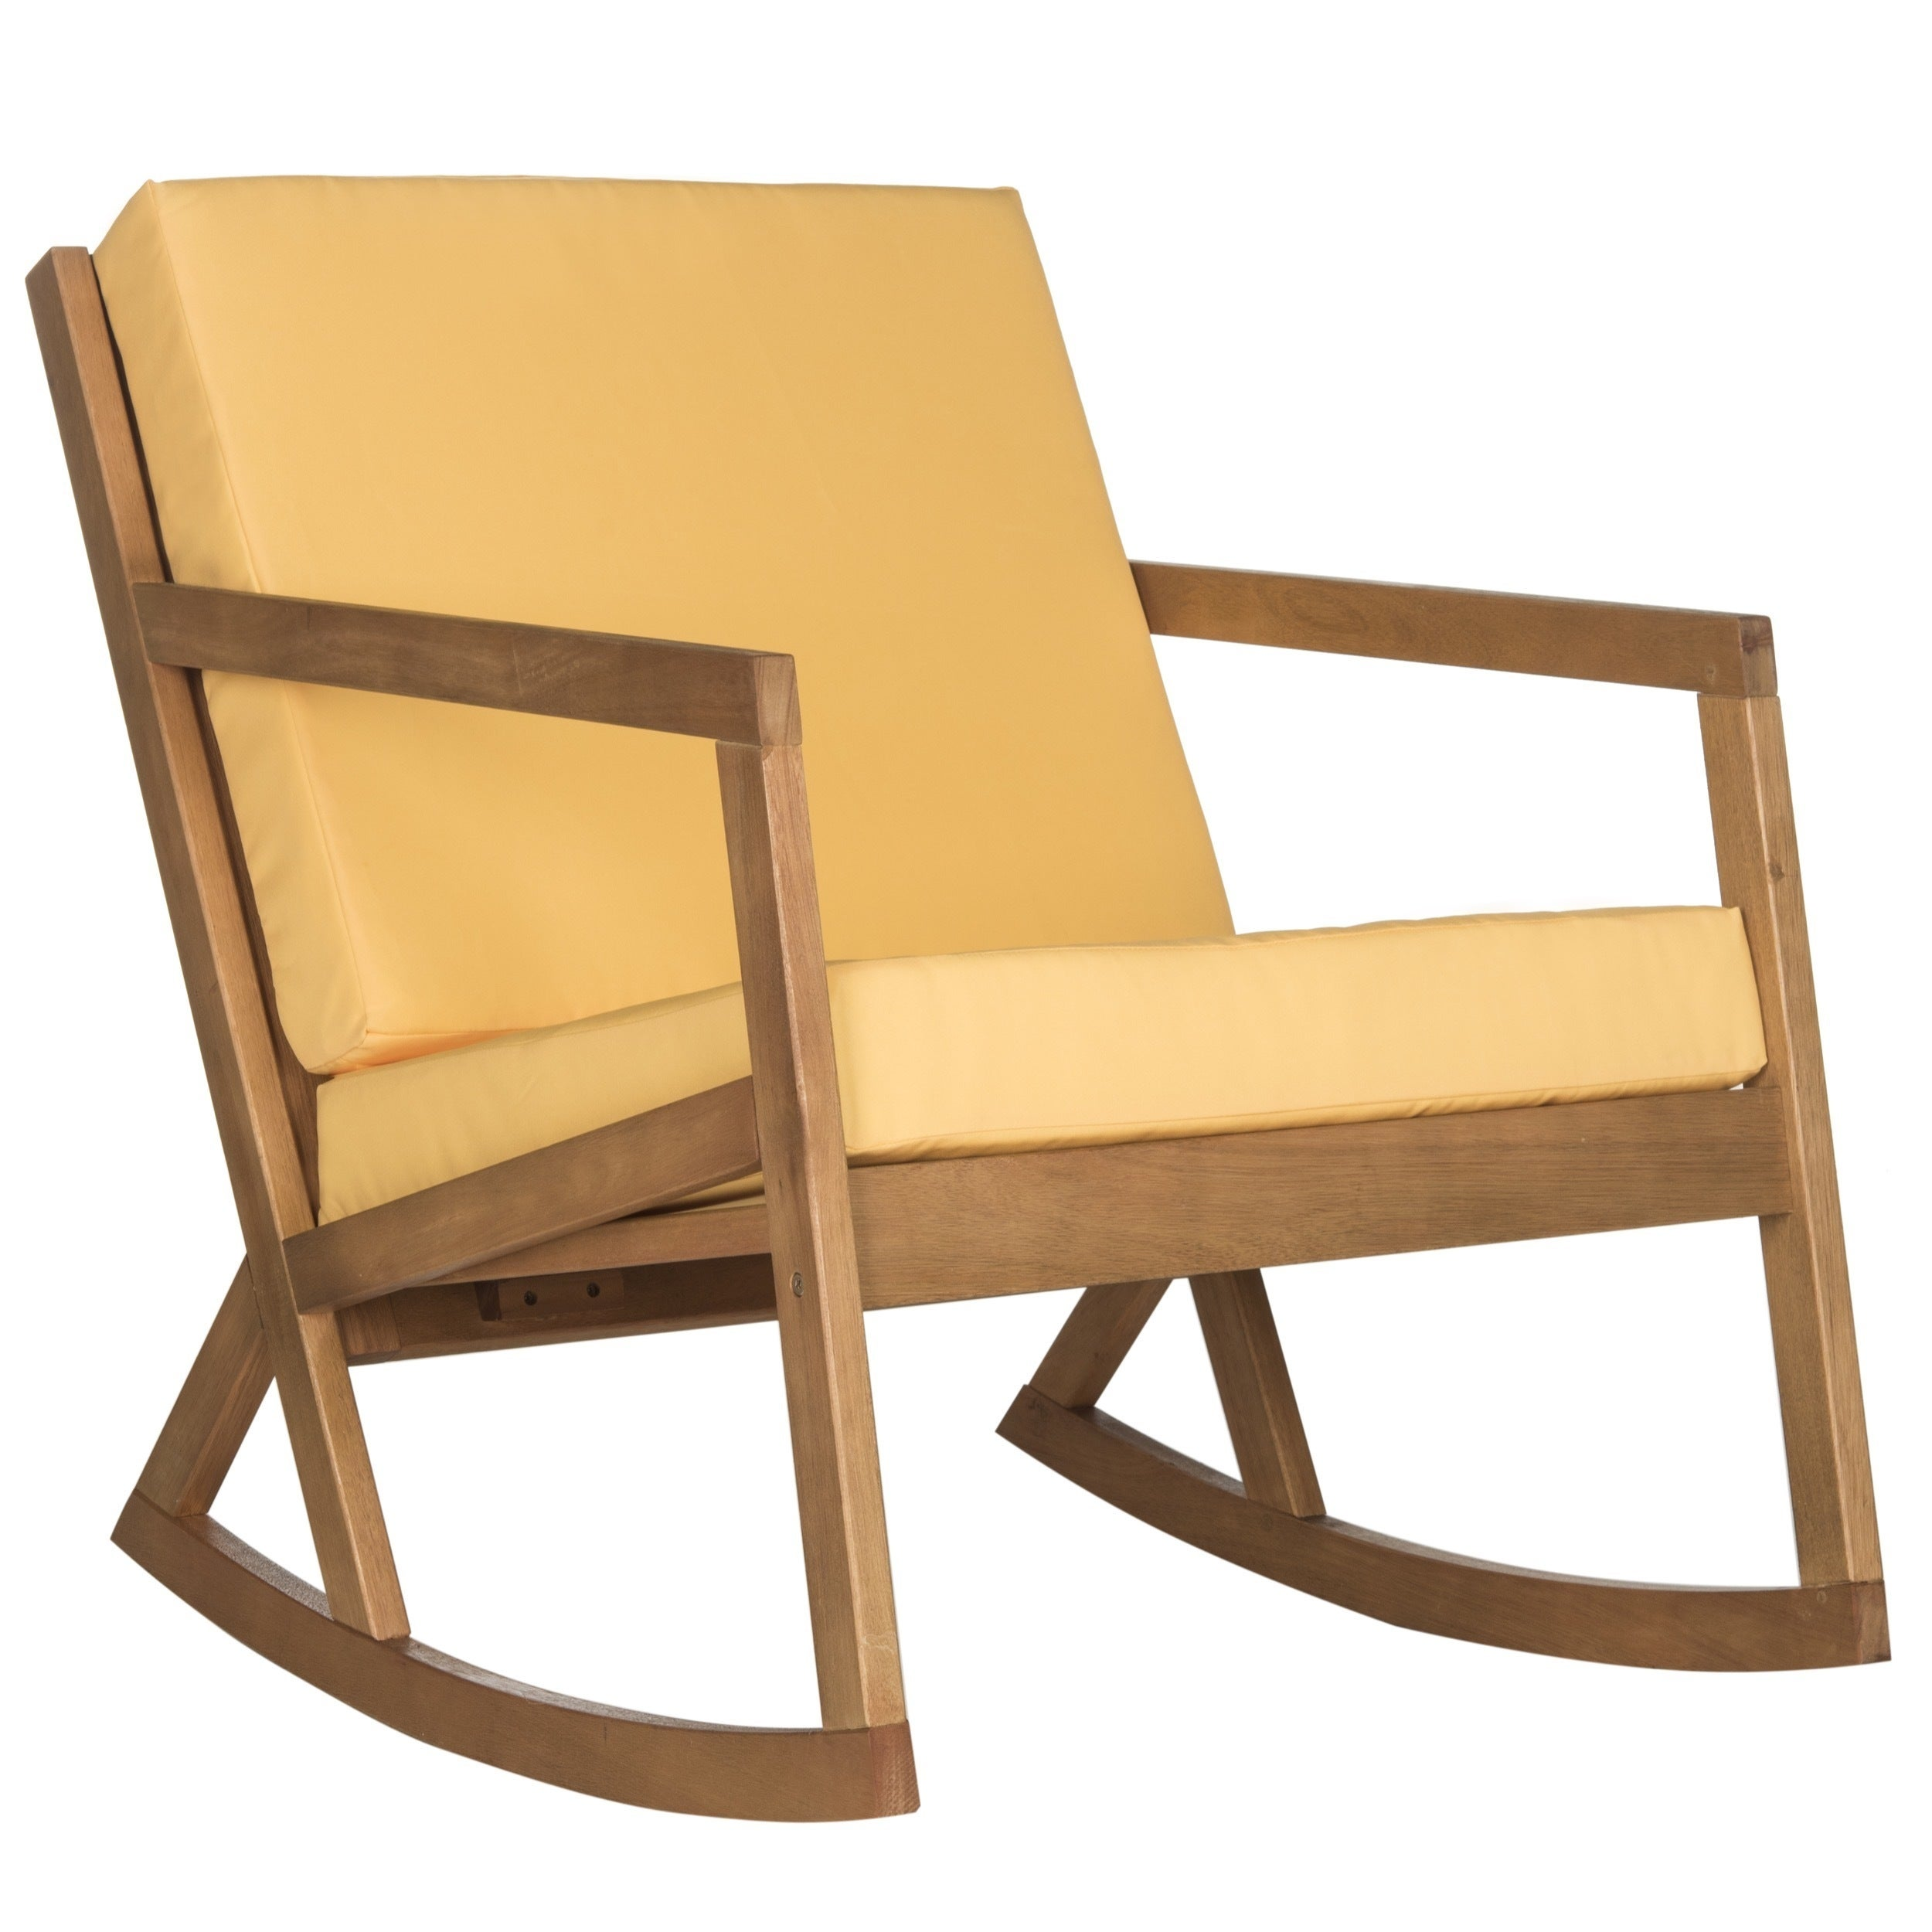 Safavieh Outdoor Living Vernon Brown Yellow Rocking Chair Free Shipping Today 18021025